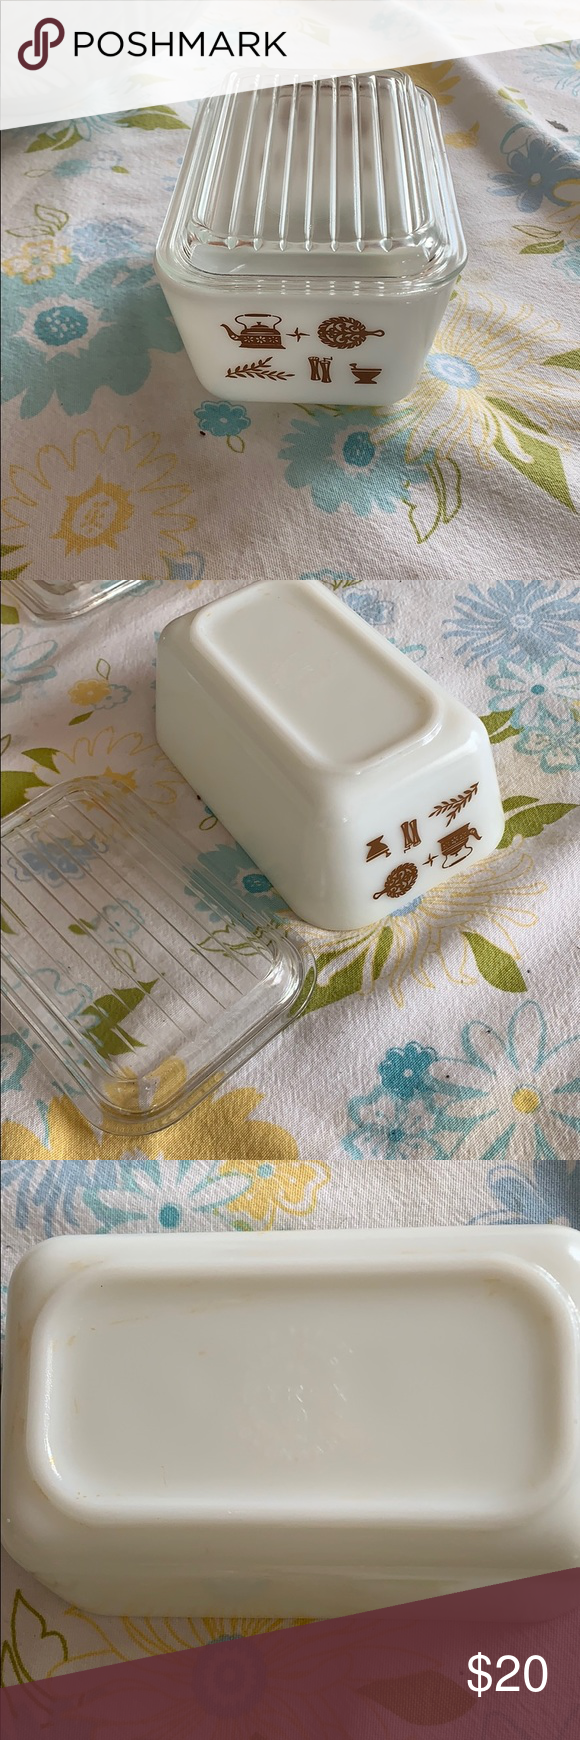 Pyrex 0502 Mint condition 0502 1 1/2 pint early American Pyrex Other